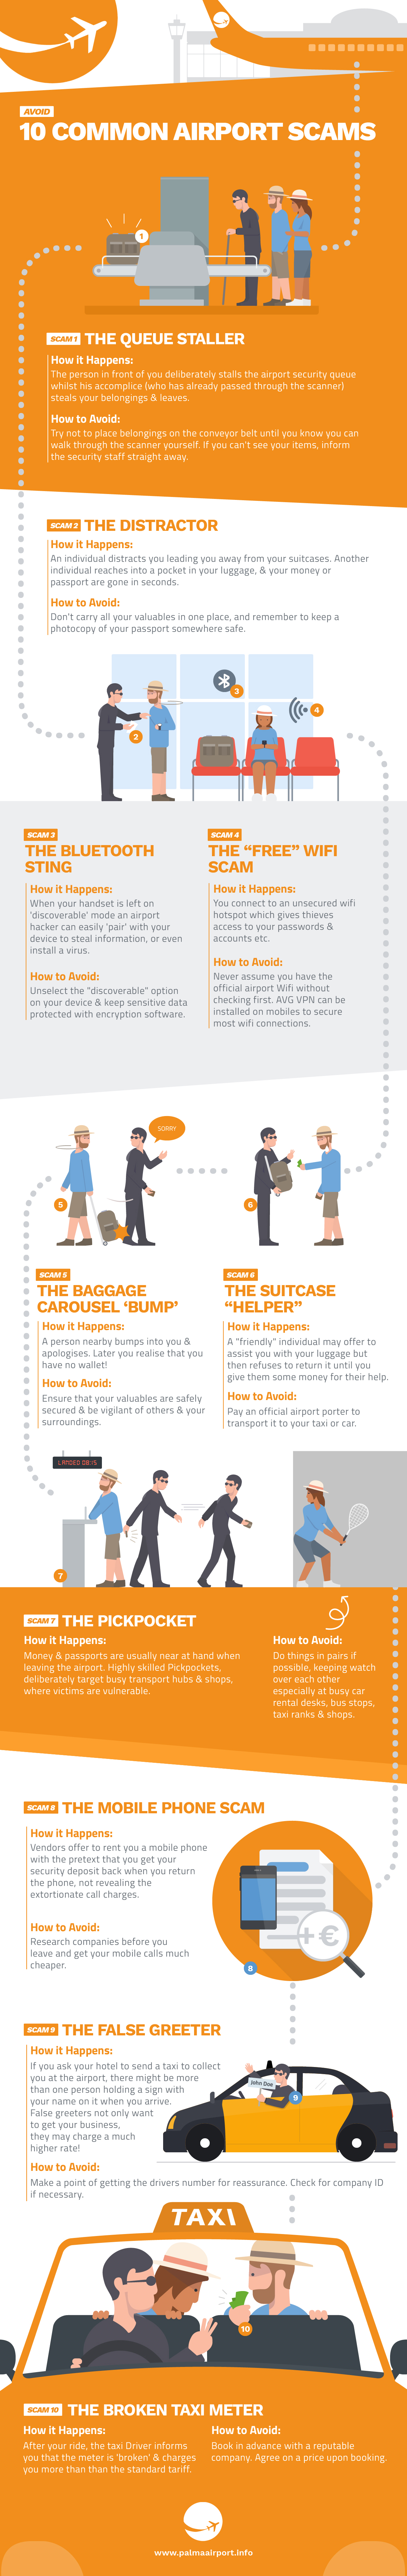 Avoid These 10 Airport Scams